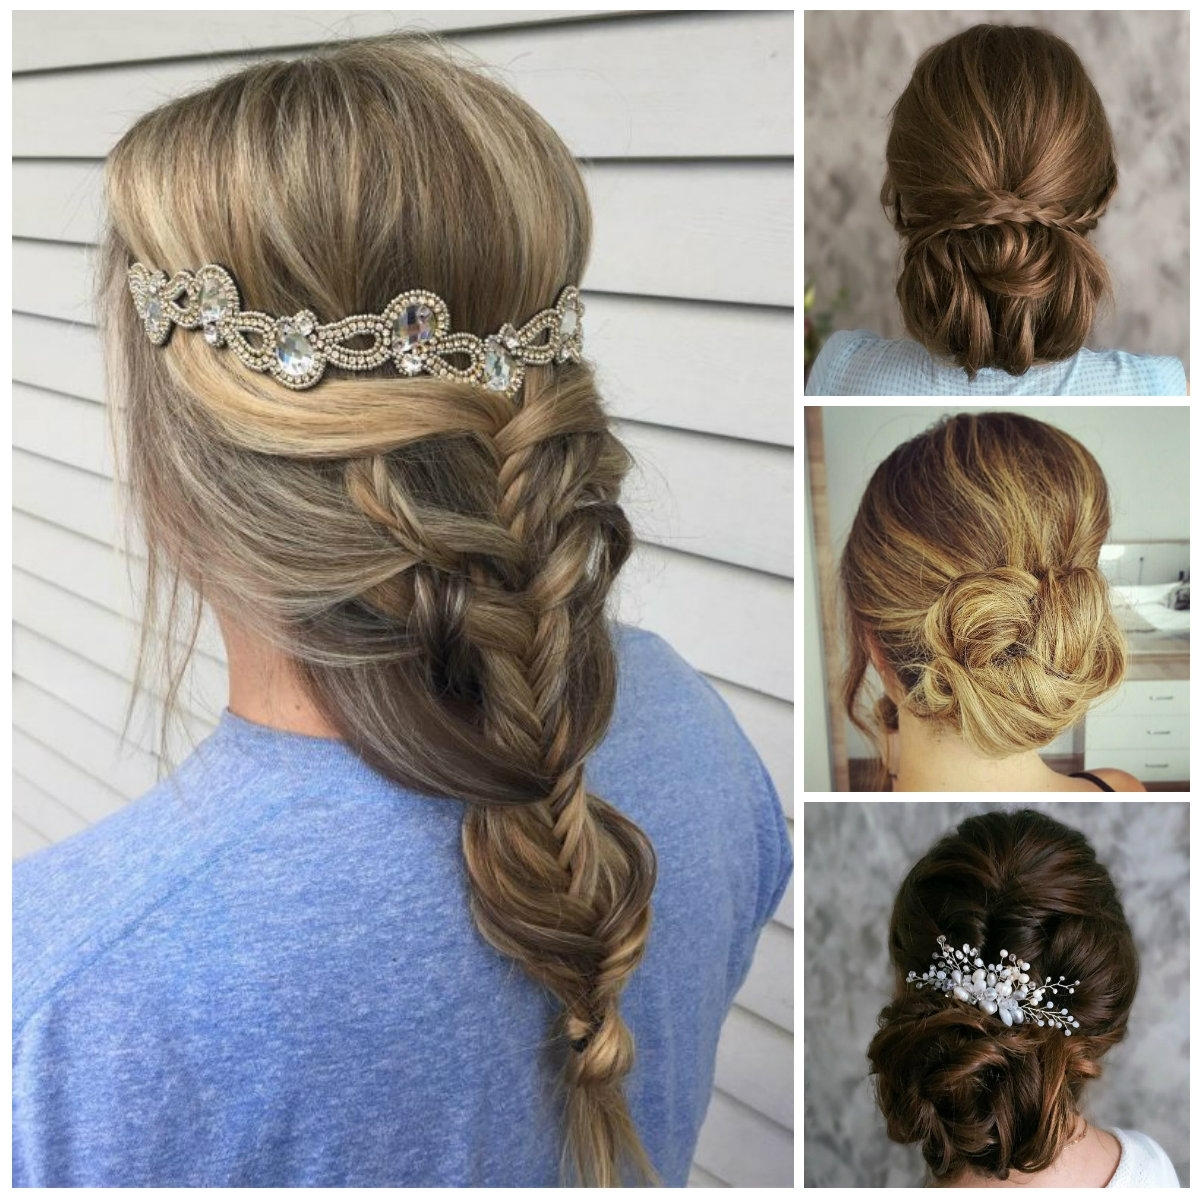 2017 Chic Updos For Long Hair | New Haircuts To Try For 2018 Inside Chic Updos For Long Hair (View 2 of 15)